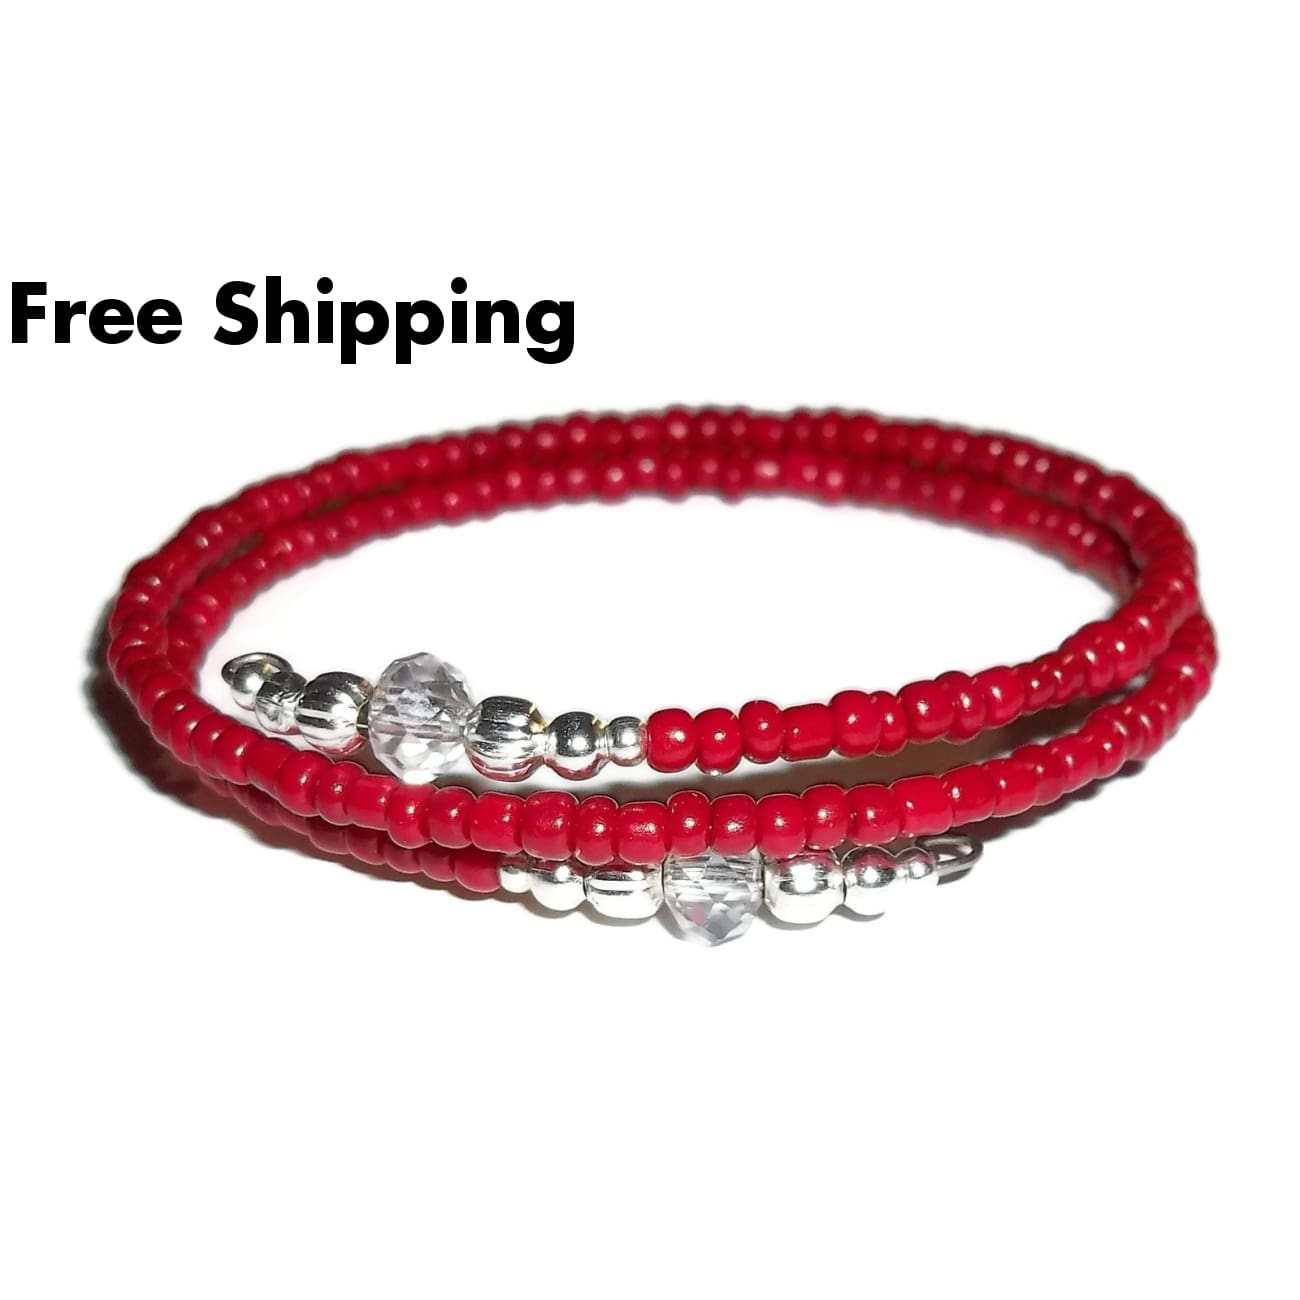 Deep Red Glass & Clear Swarovski Crystal Ends Silver Artisan Crafted Stackables Adjustable Bracelet (S-M) - New Arrival